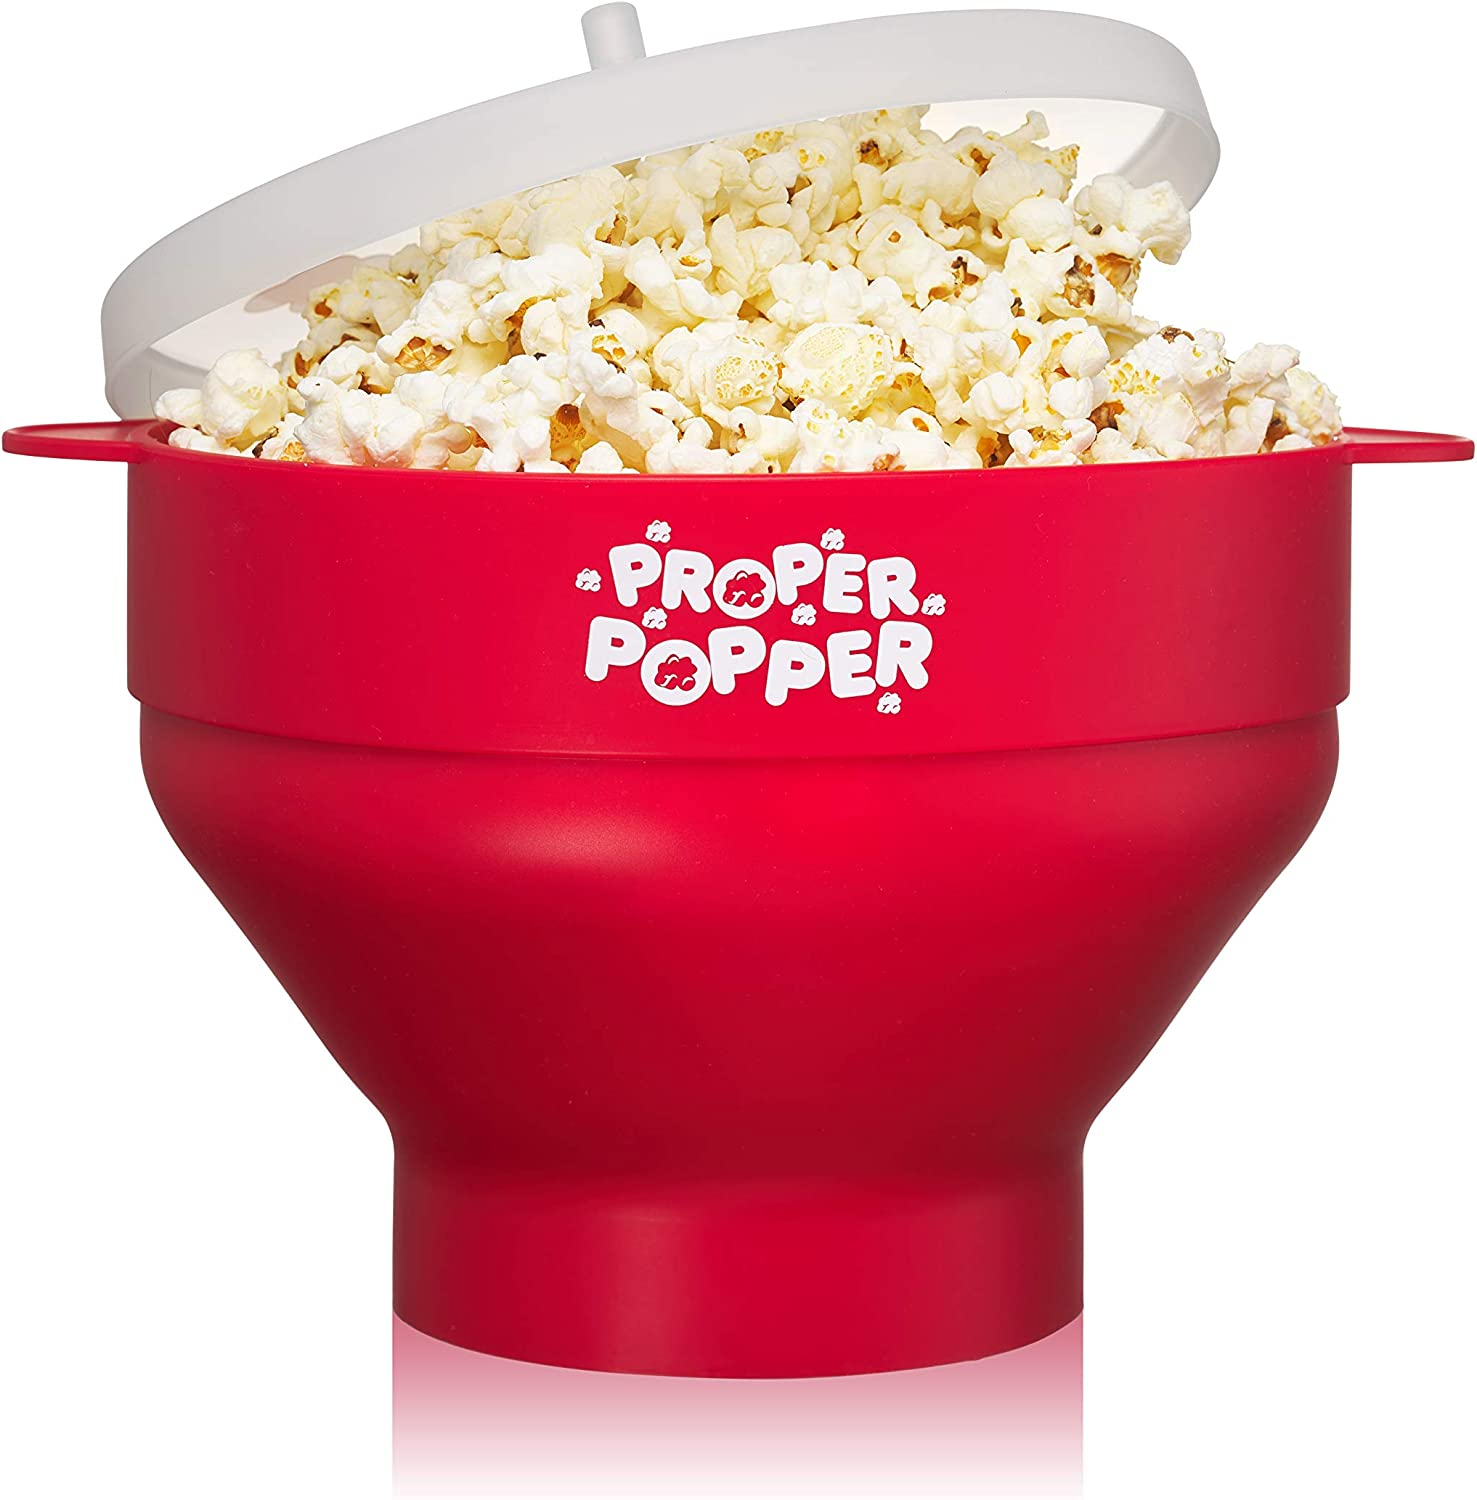 The Original Proper Popper Microwave Popcorn Popper, Silicone Popcorn Maker, Collapsible Bowl BPA Free & Dishwasher Safe - (Red)